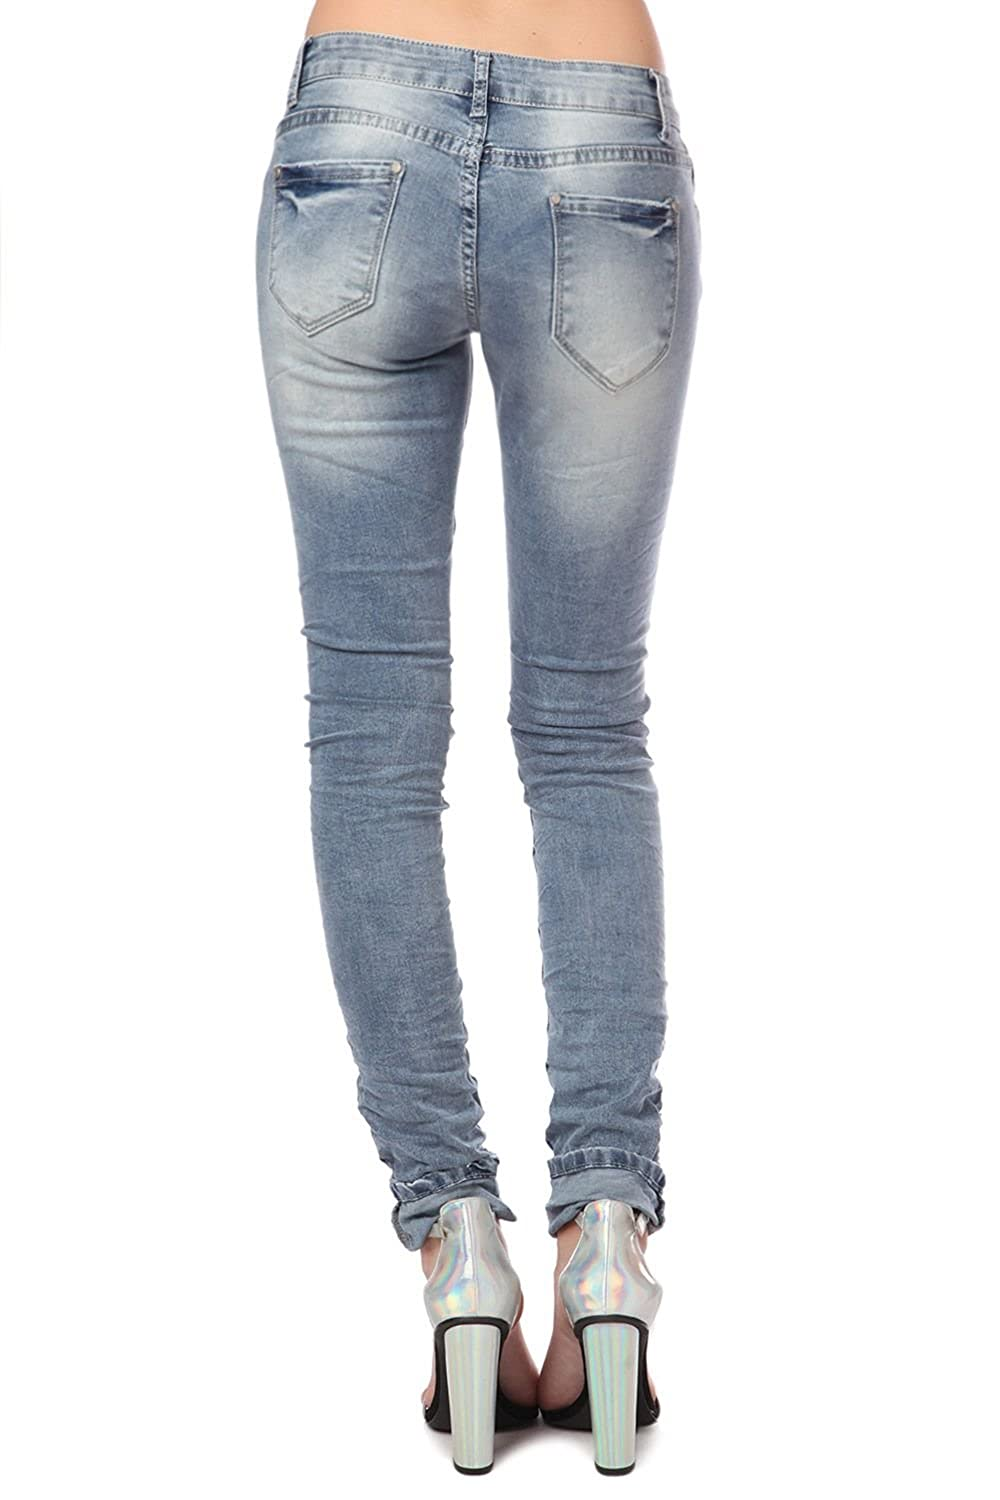 Q2 Women's Skinny jeans with patches